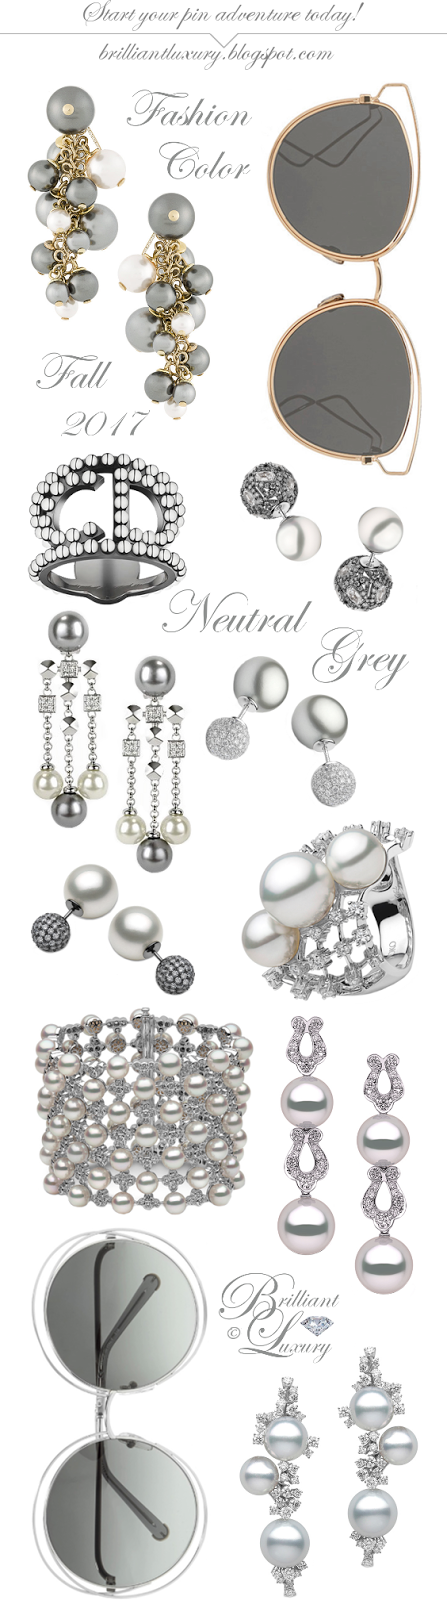 Brilliant Luxury ♦ Fashion Color Fall 2017 ~ neutral grey ~ jewelry